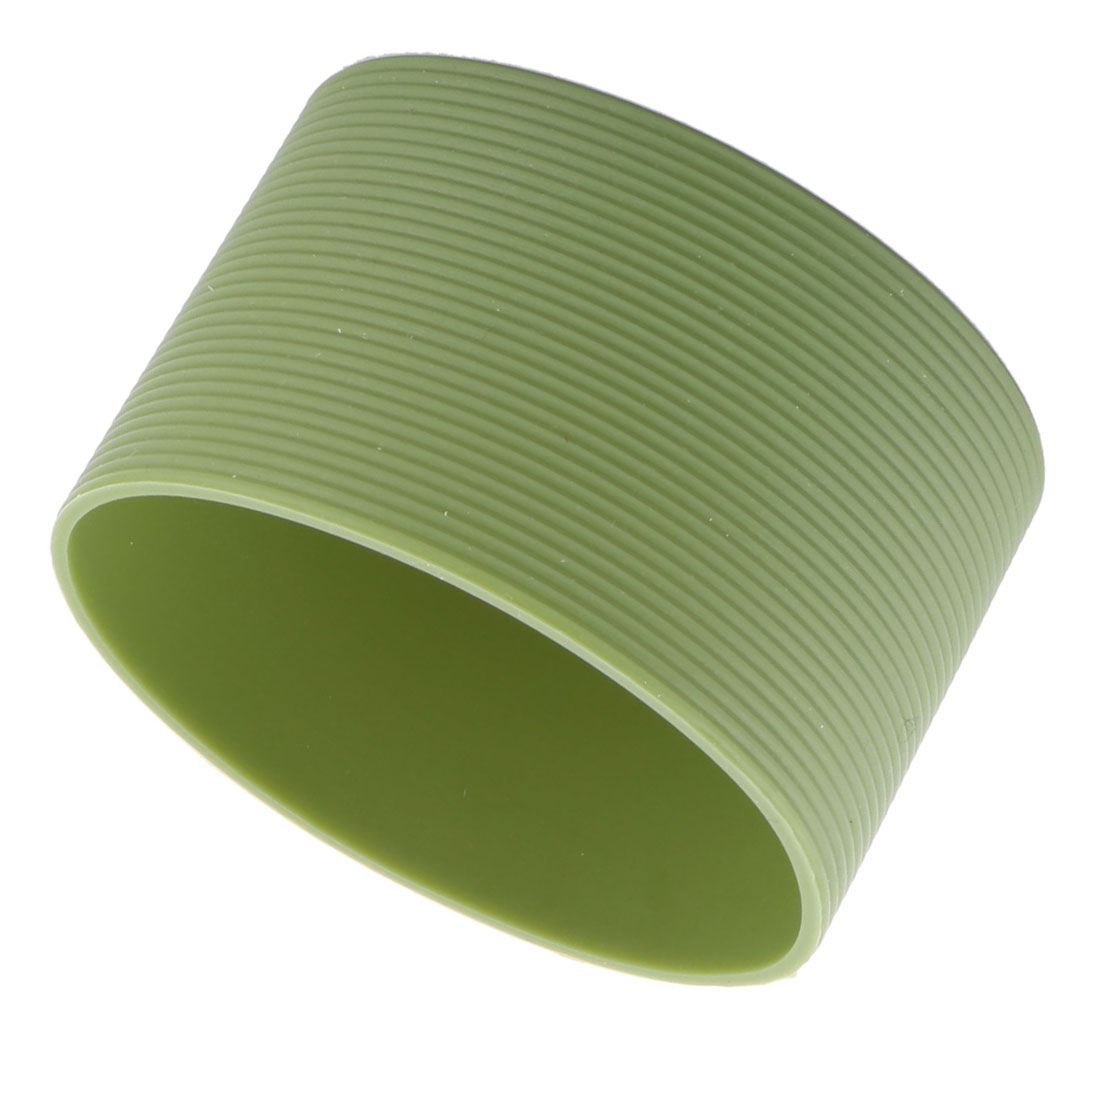 Outdoor Silicone Round Nonskid Water Bottle Mug Cup Sleeve Cover/_hc